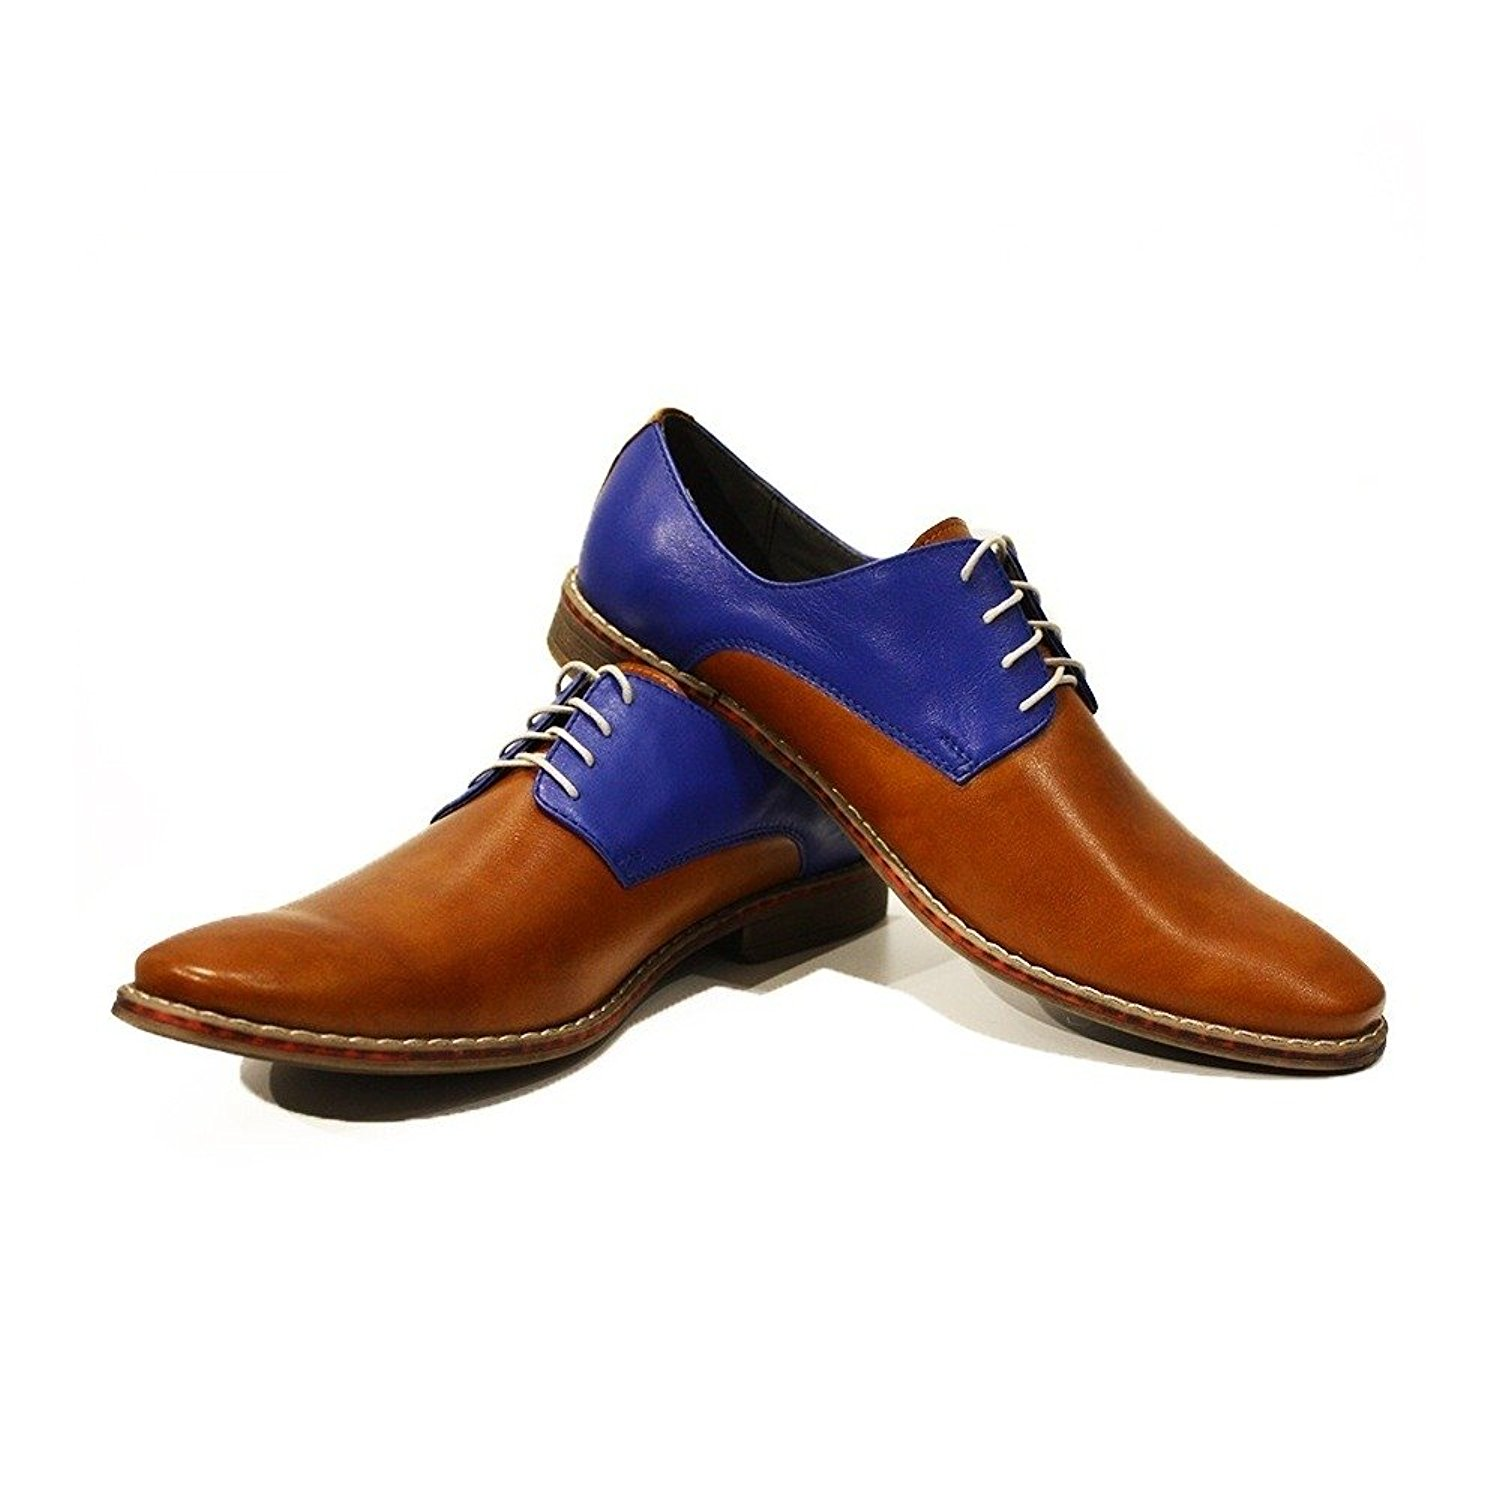 Modello Flavio - Handmade Italian Mens Brown Oxfords Dress Shoes - Cowhide Smooth Leather - Lace-Up